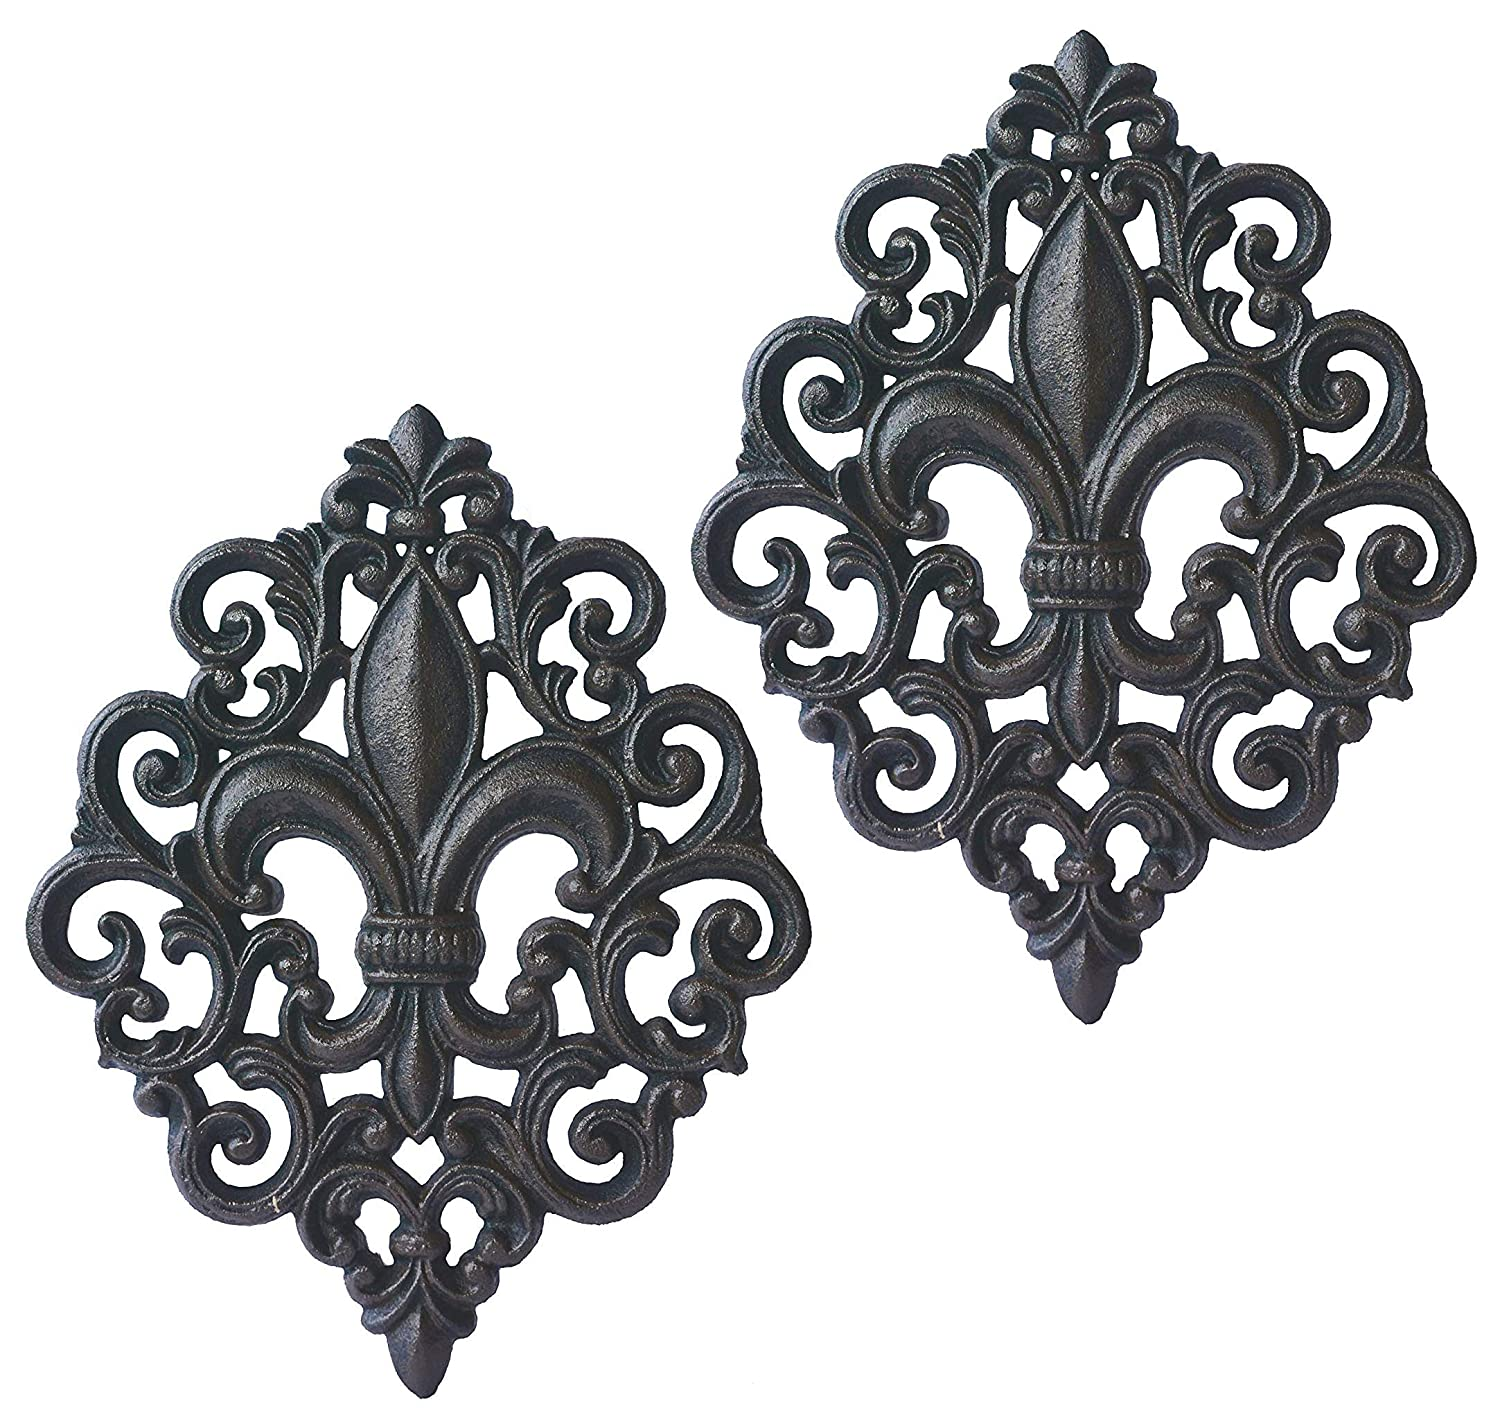 Lulu Decor, Cast Iron Fleur De Lis Decoration Plaque (2 Pieces)